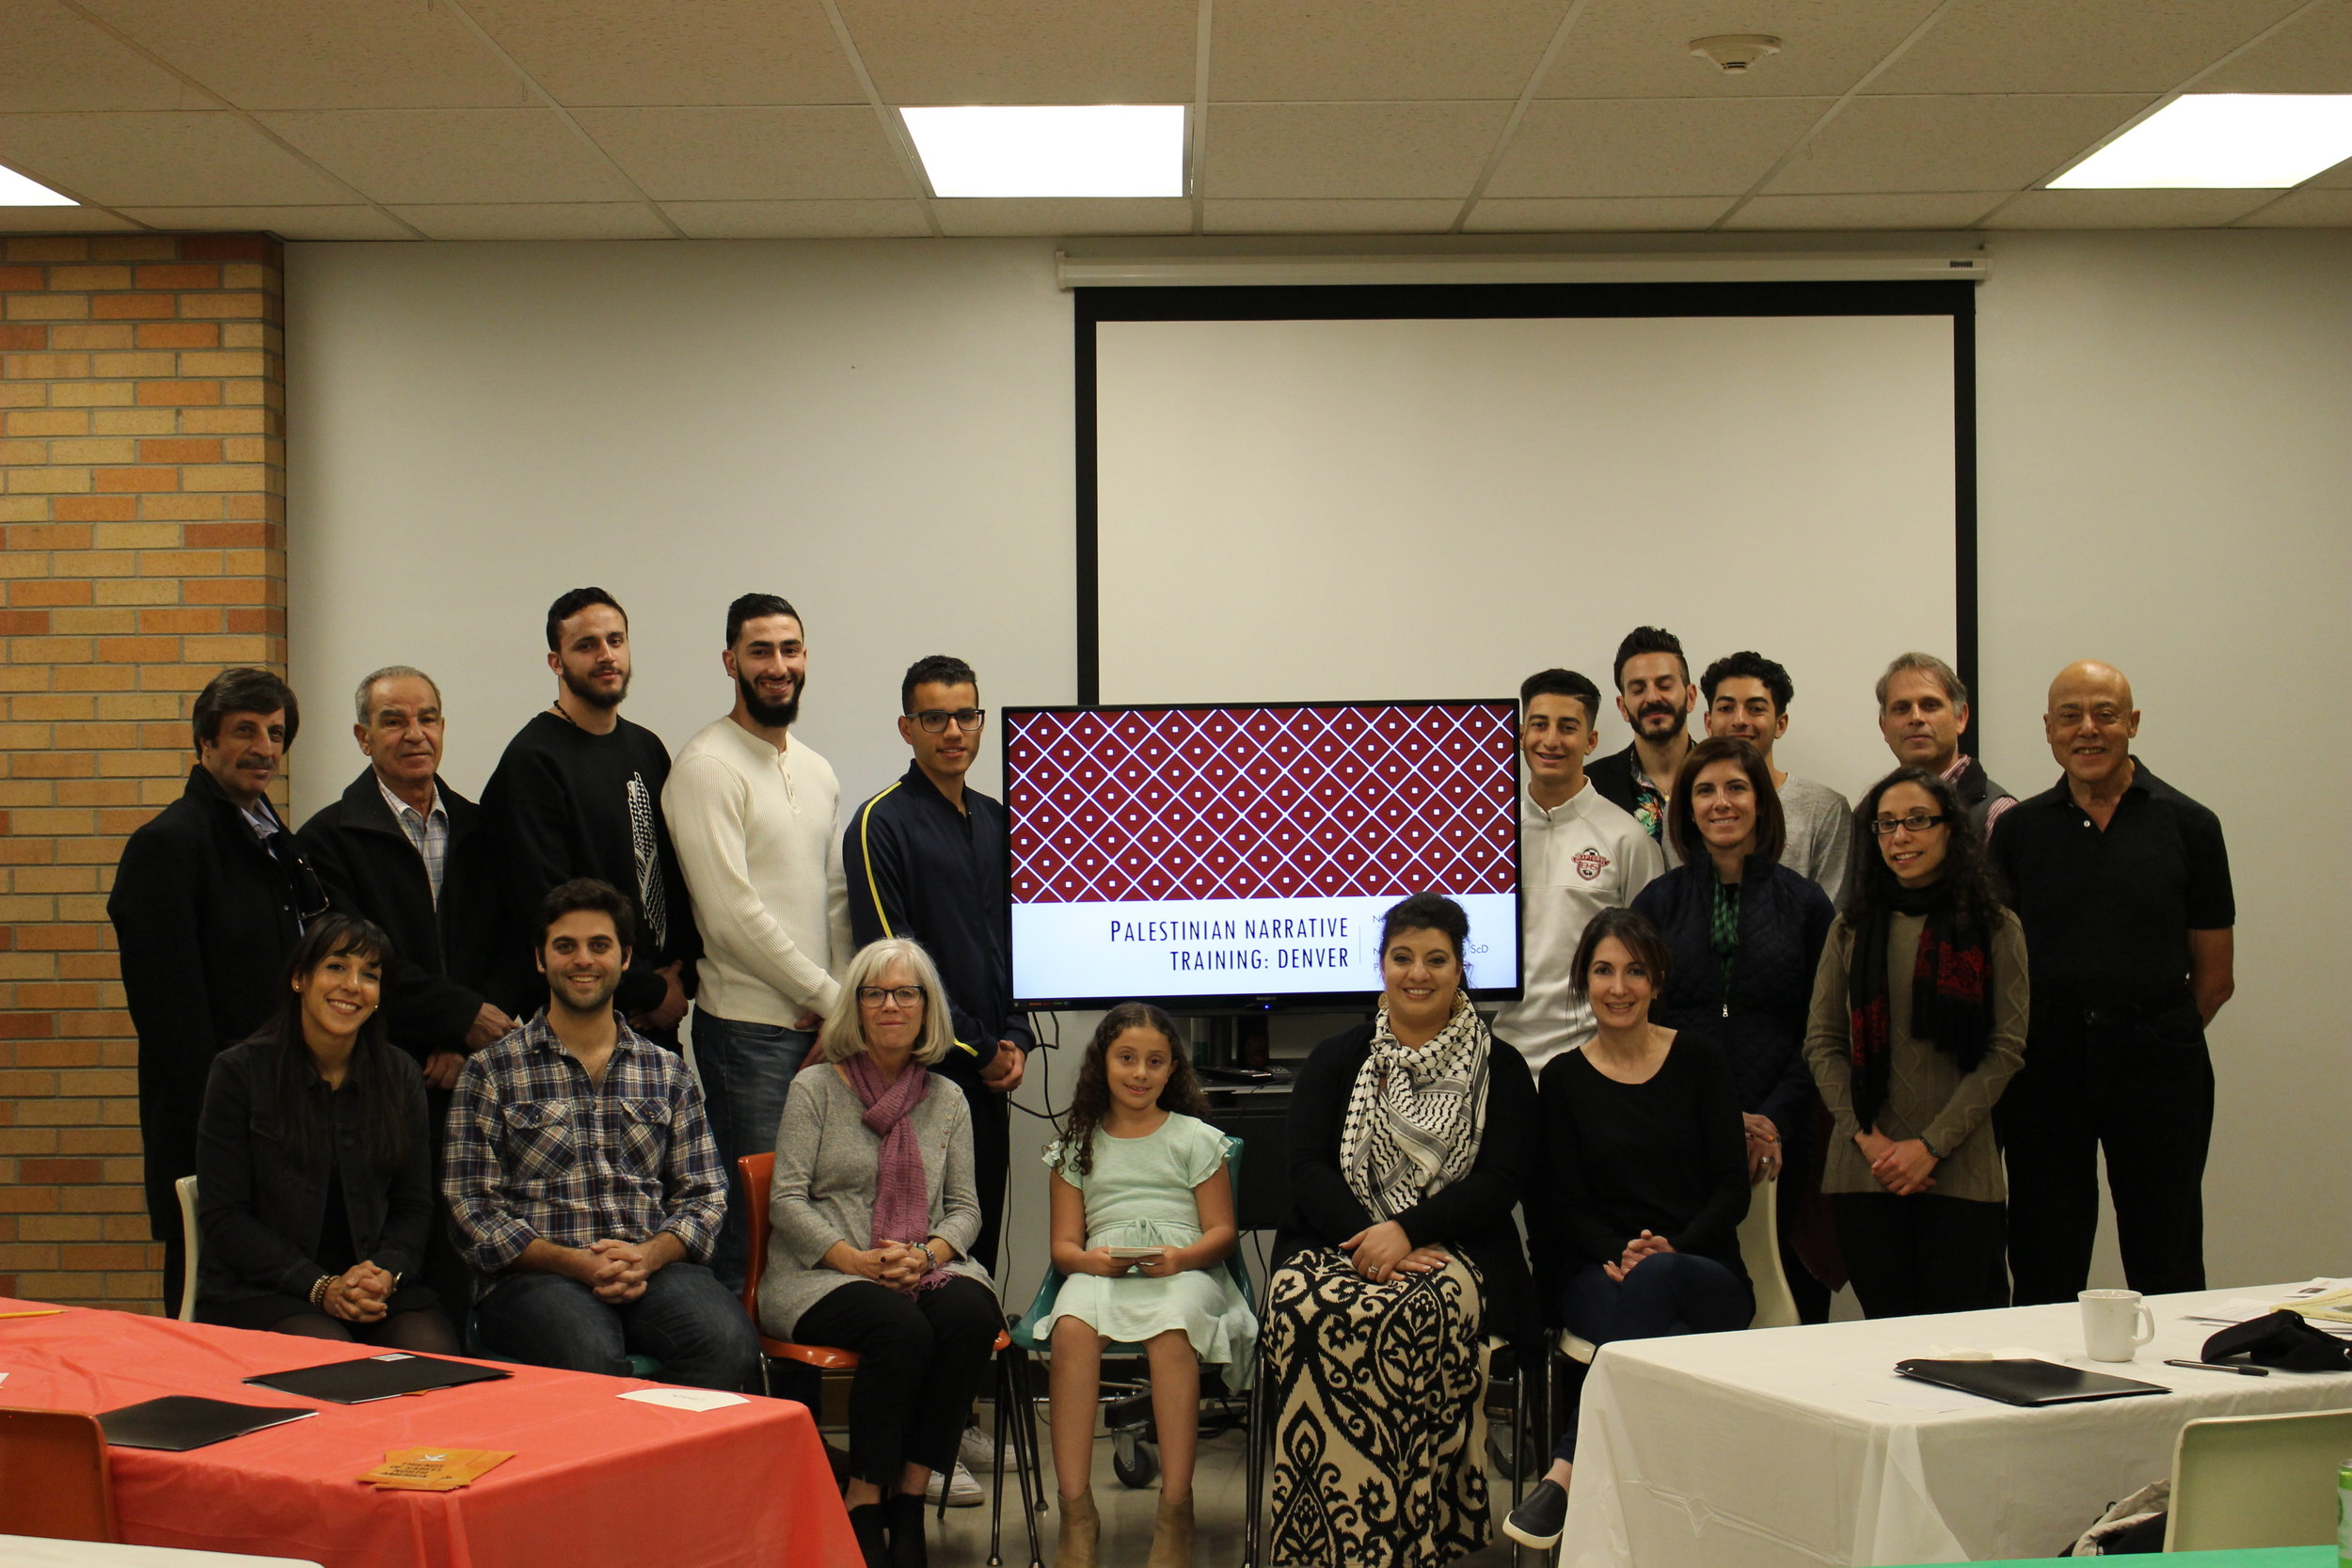 Palestinian Narrative Training - Denver, COSunday November 4, 2018Storytelling workshop led by Nadia Abuelezam held in collaboration with FOSNA with 30 attendees.